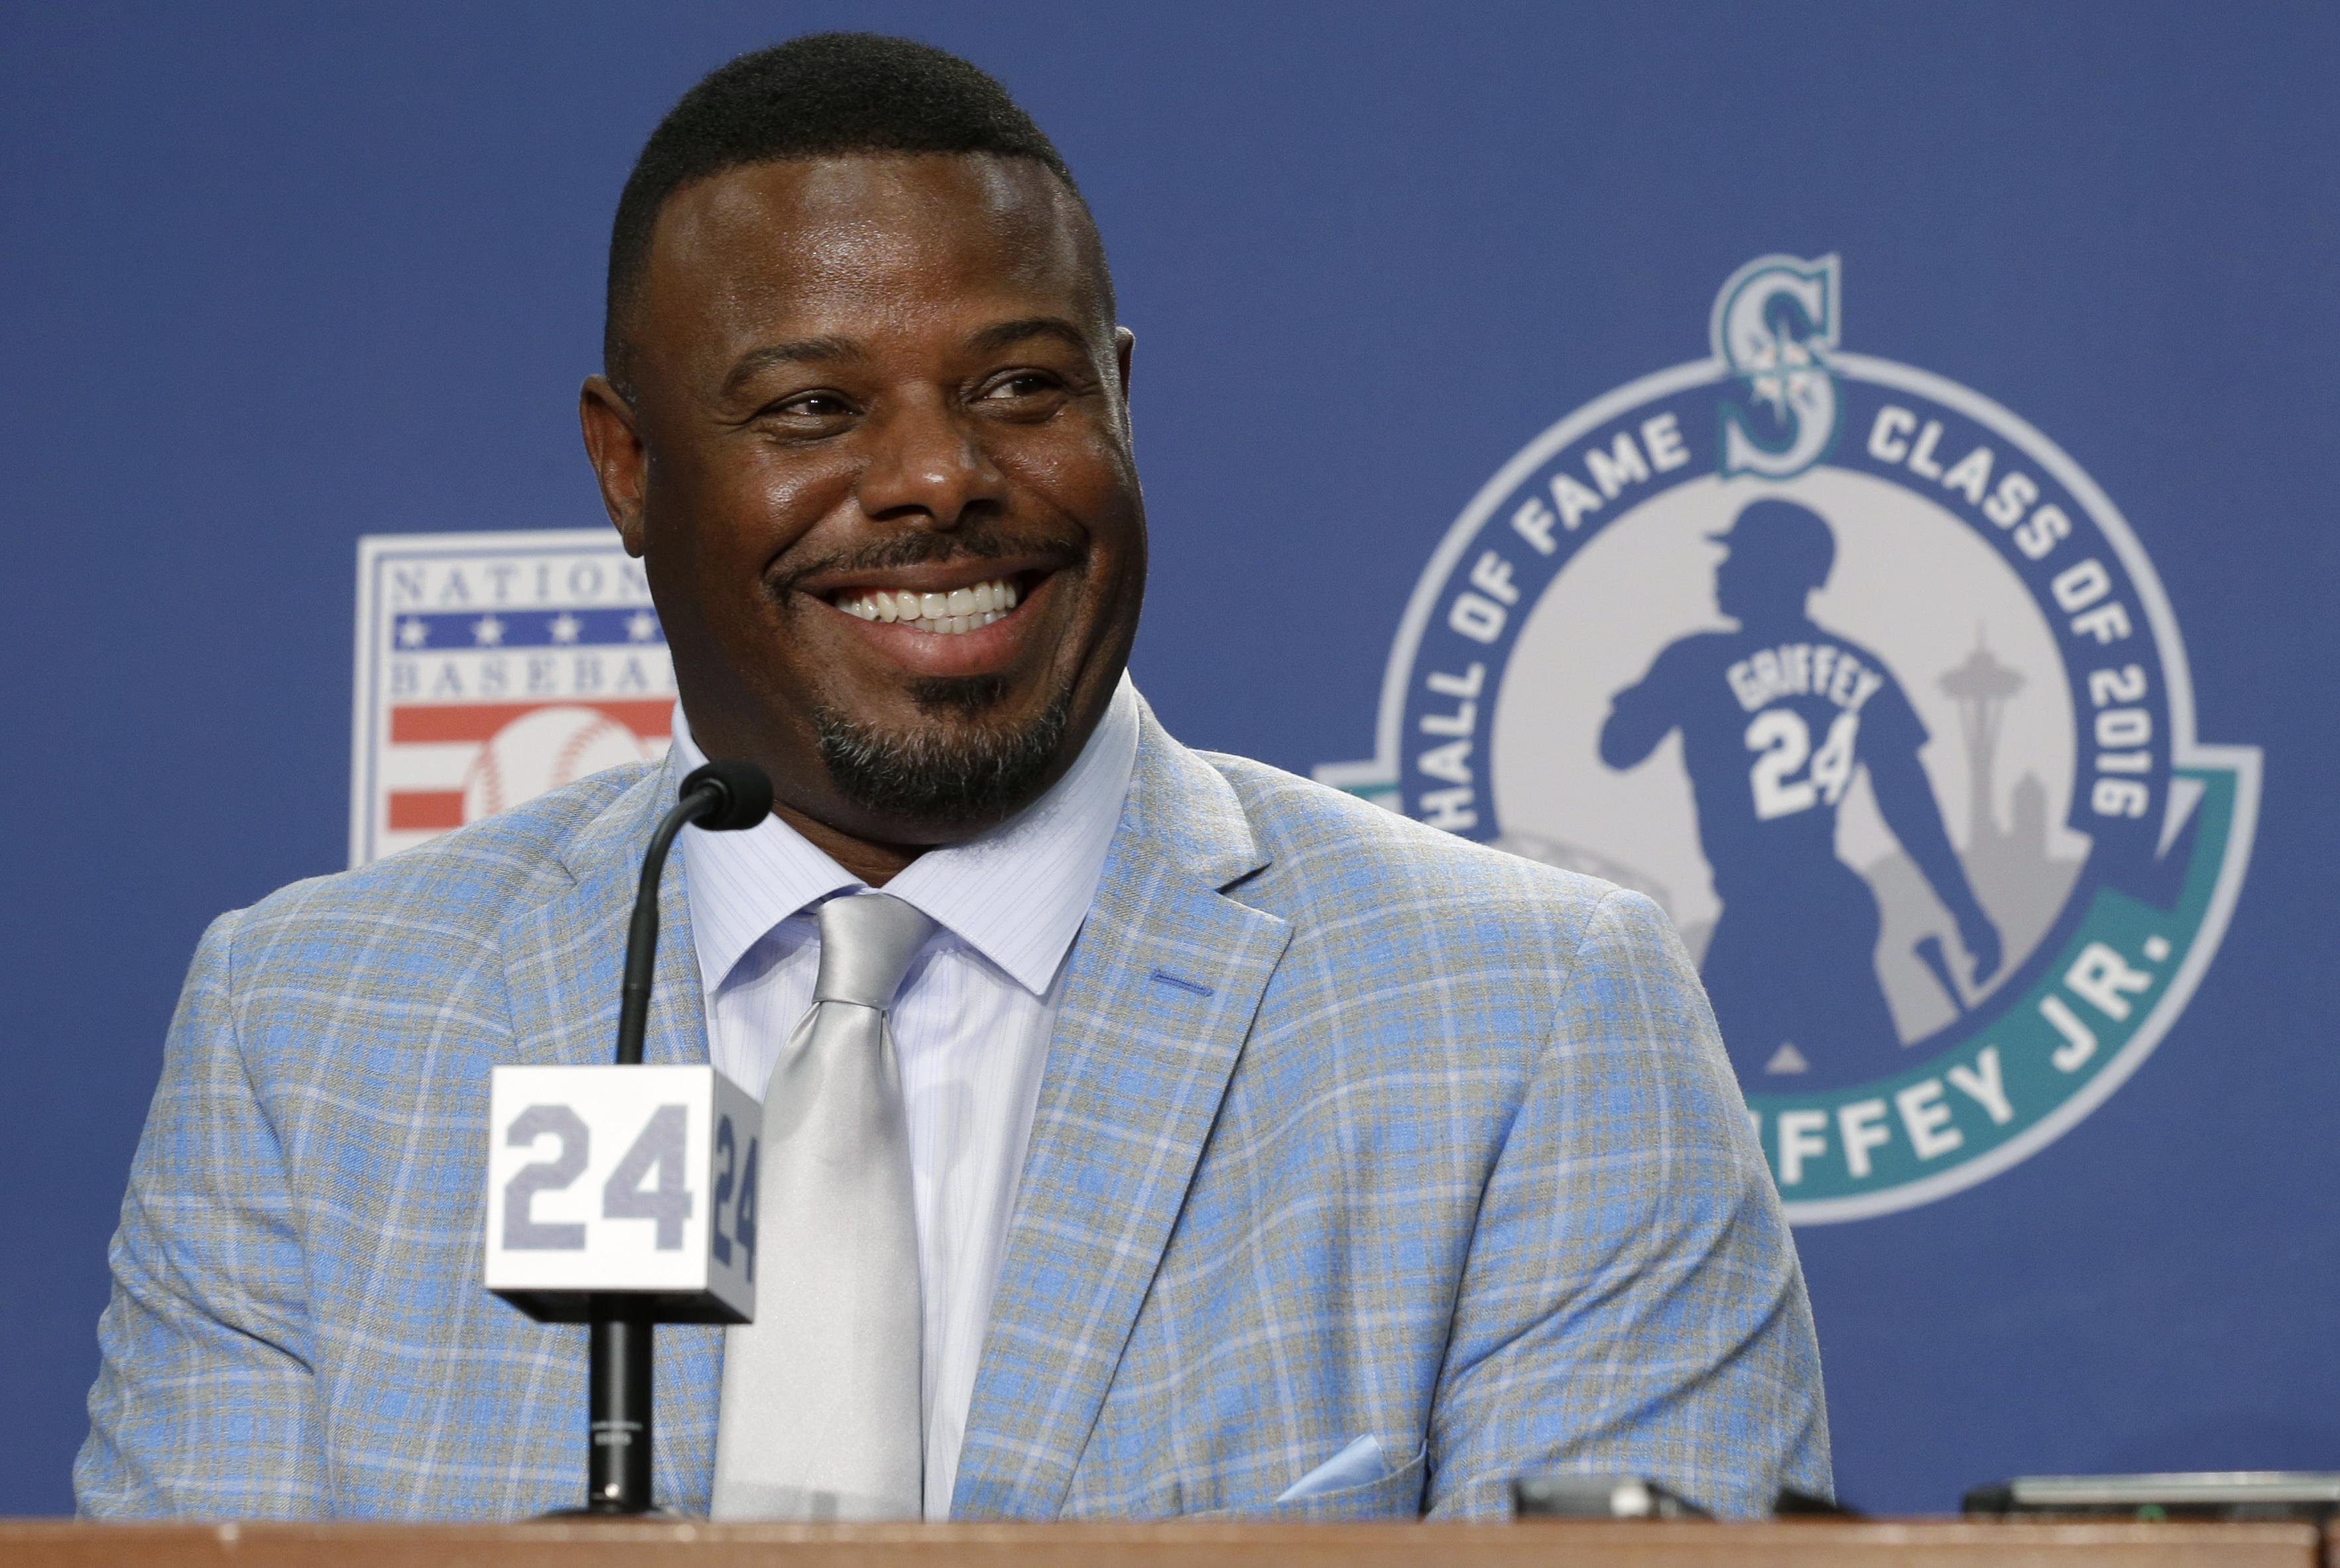 6a8f9cb5e3 Ken Griffey Jr. spent a busy day in Seattle on Friday in preparation for  Saturday's